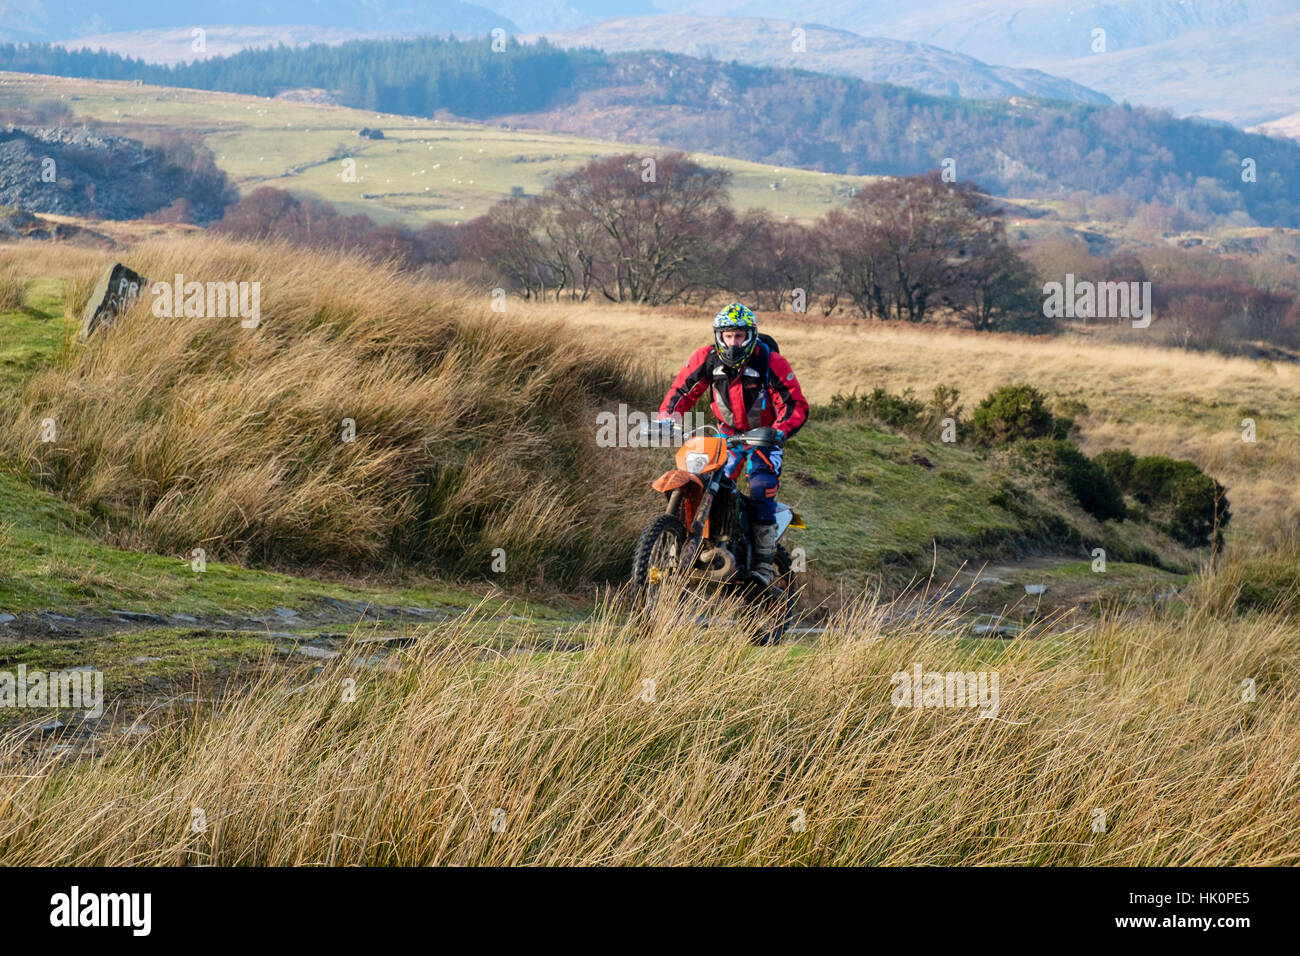 A man riding a dirt bike on a multi-use country track in Snowdonia National Park. Capel Curig, Conwy, Wales, UK, - Stock Image